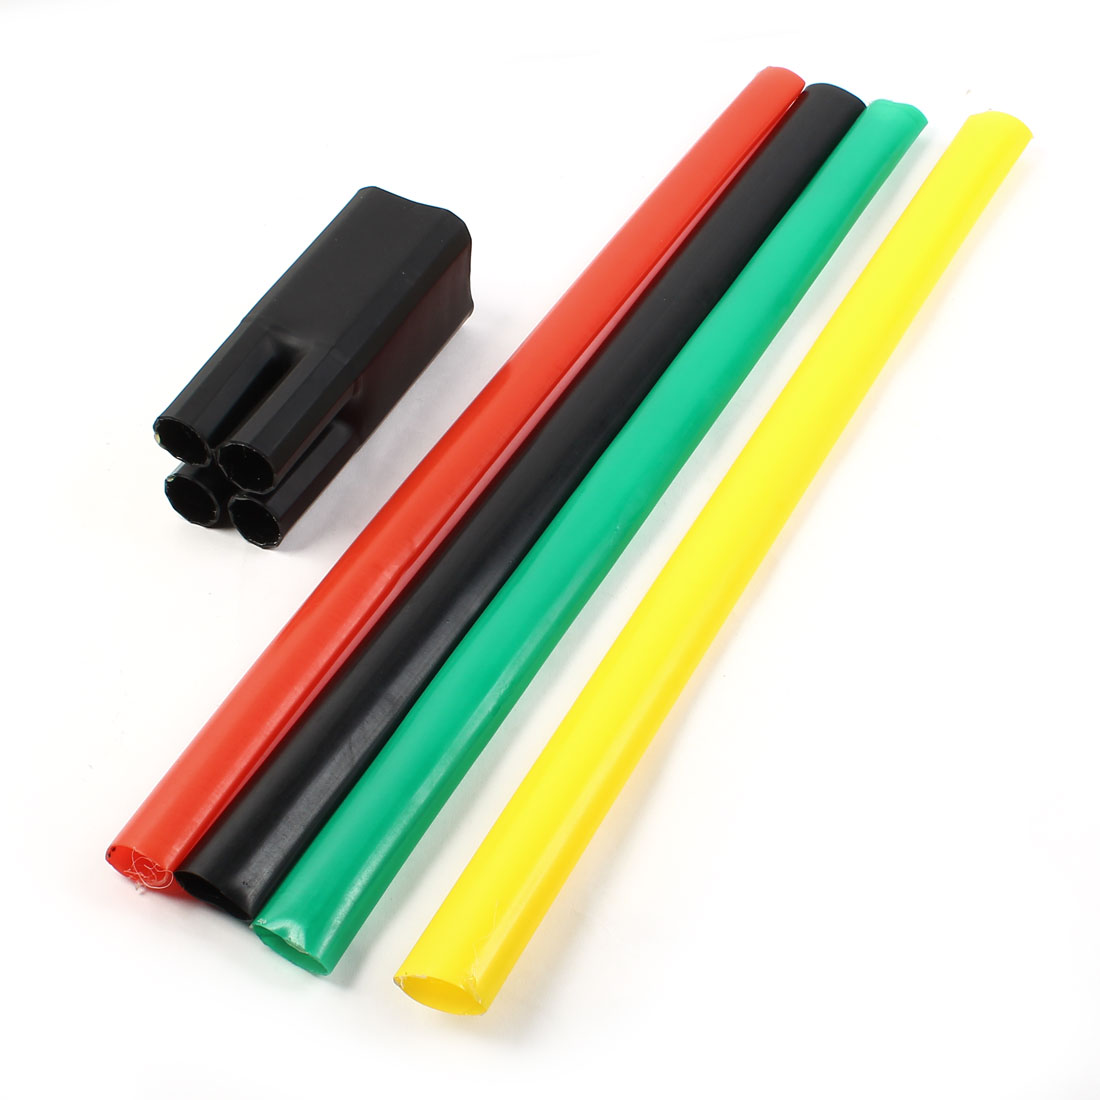 1KV 70-120mm2 Multi Color Heat Shrinkable Bushing 4 Way Heatshrink Breakout Boot